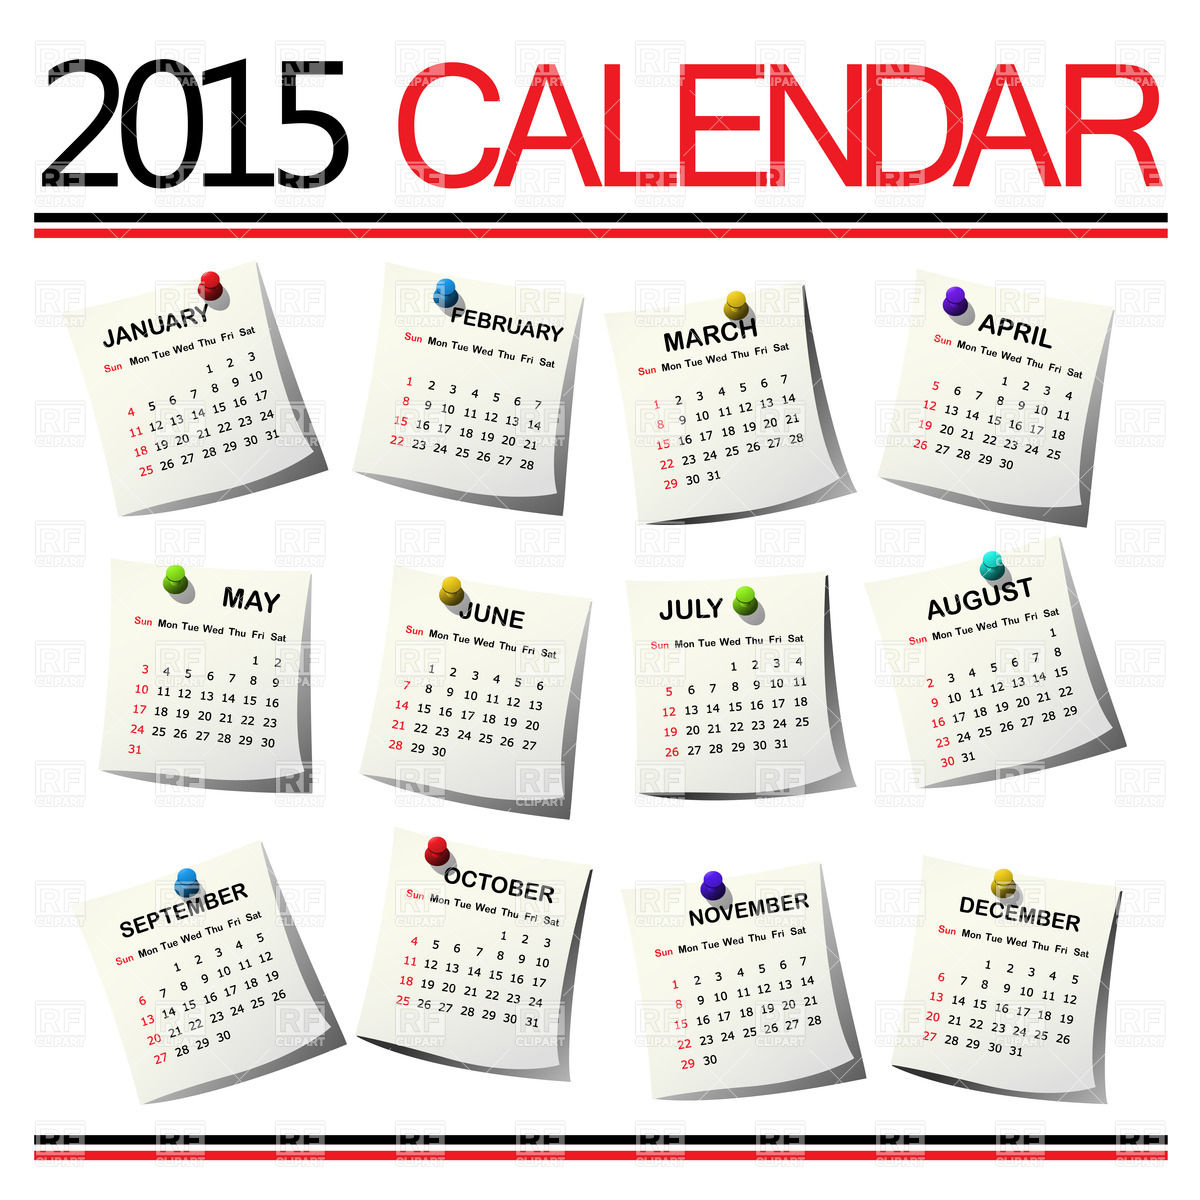 Calendar For 2015 Year For All Months Calendars Layouts Download